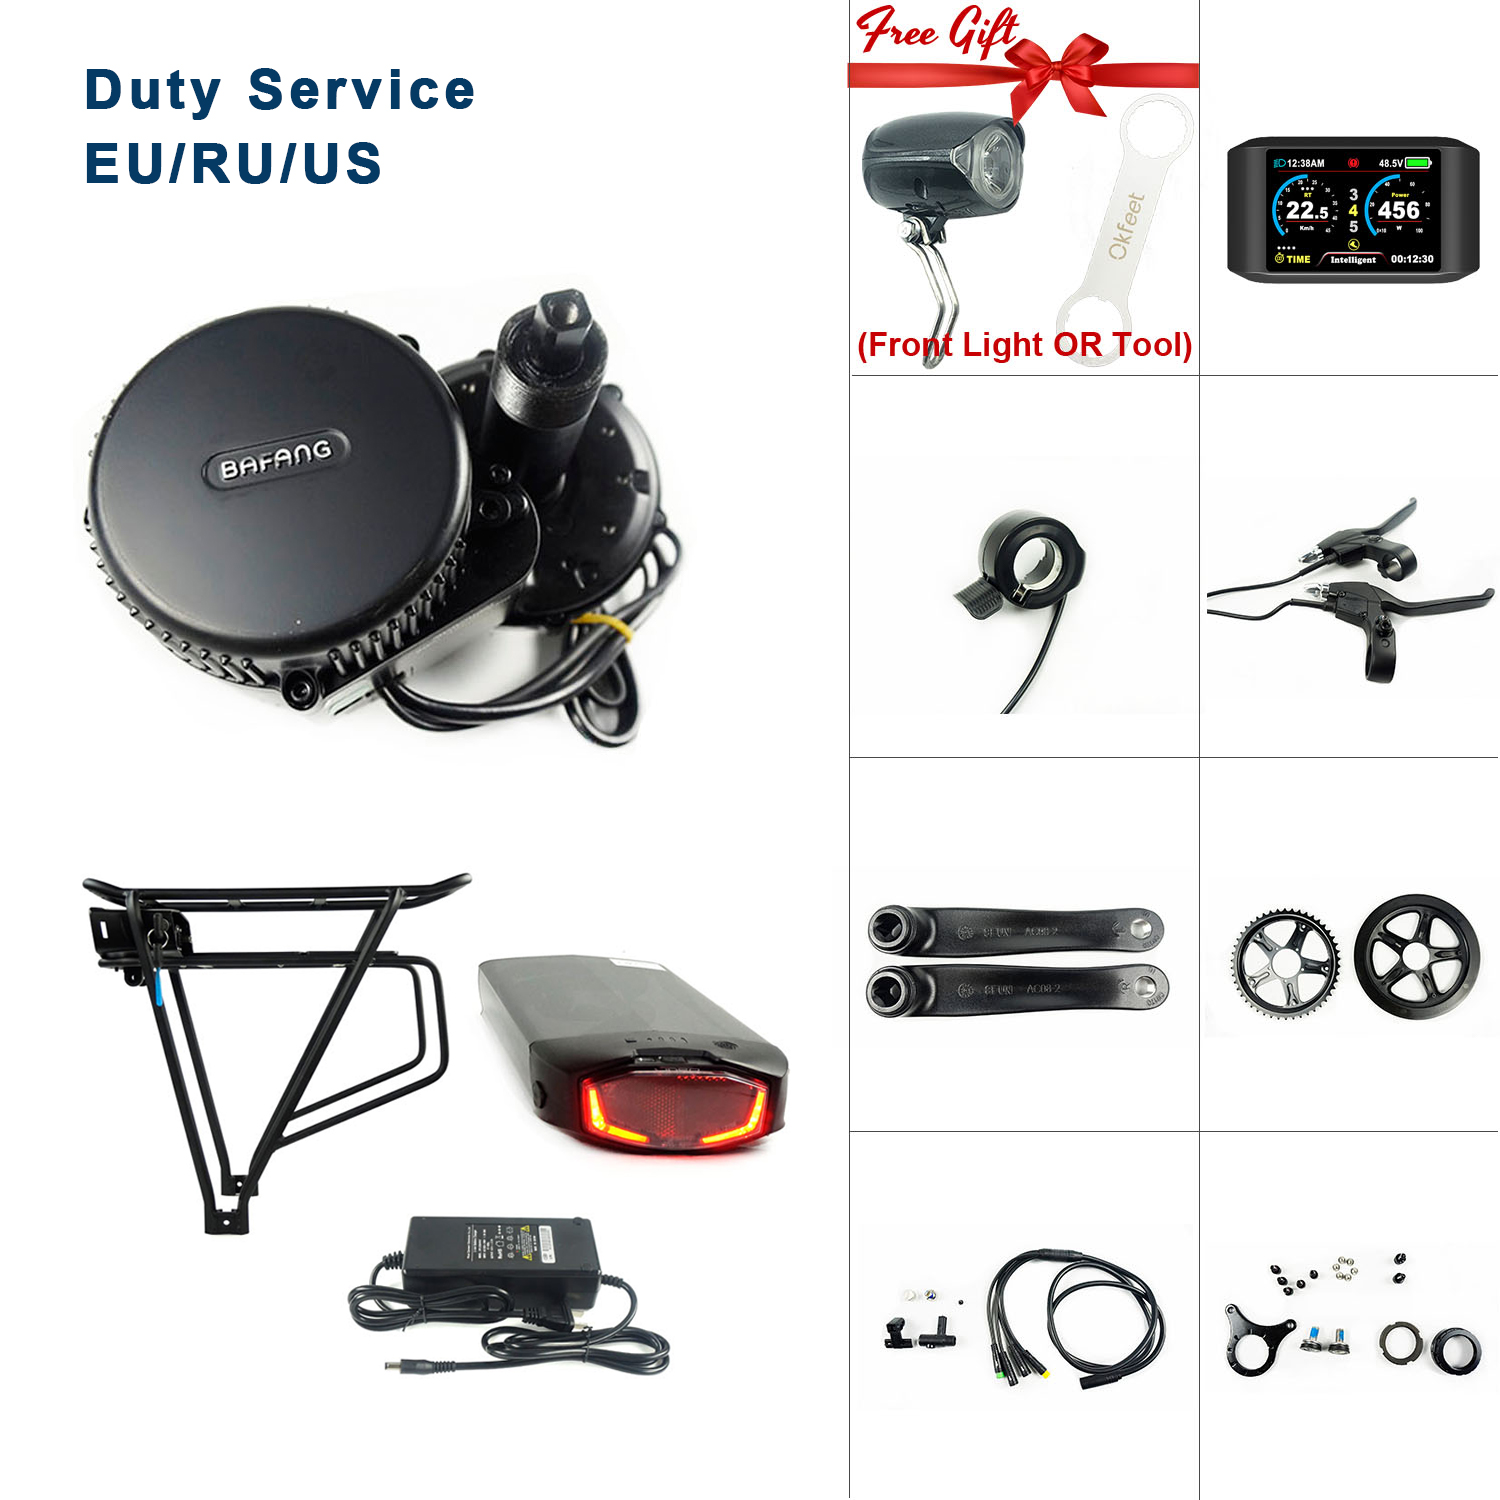 Bafang <font><b>36V</b></font> 250W BBS01 MMG340 Light E-bike Mid Drive <font><b>Motor</b></font> Ebike Conversion Kit With <font><b>36V</b></font> 16Ah Rack Battery Function image